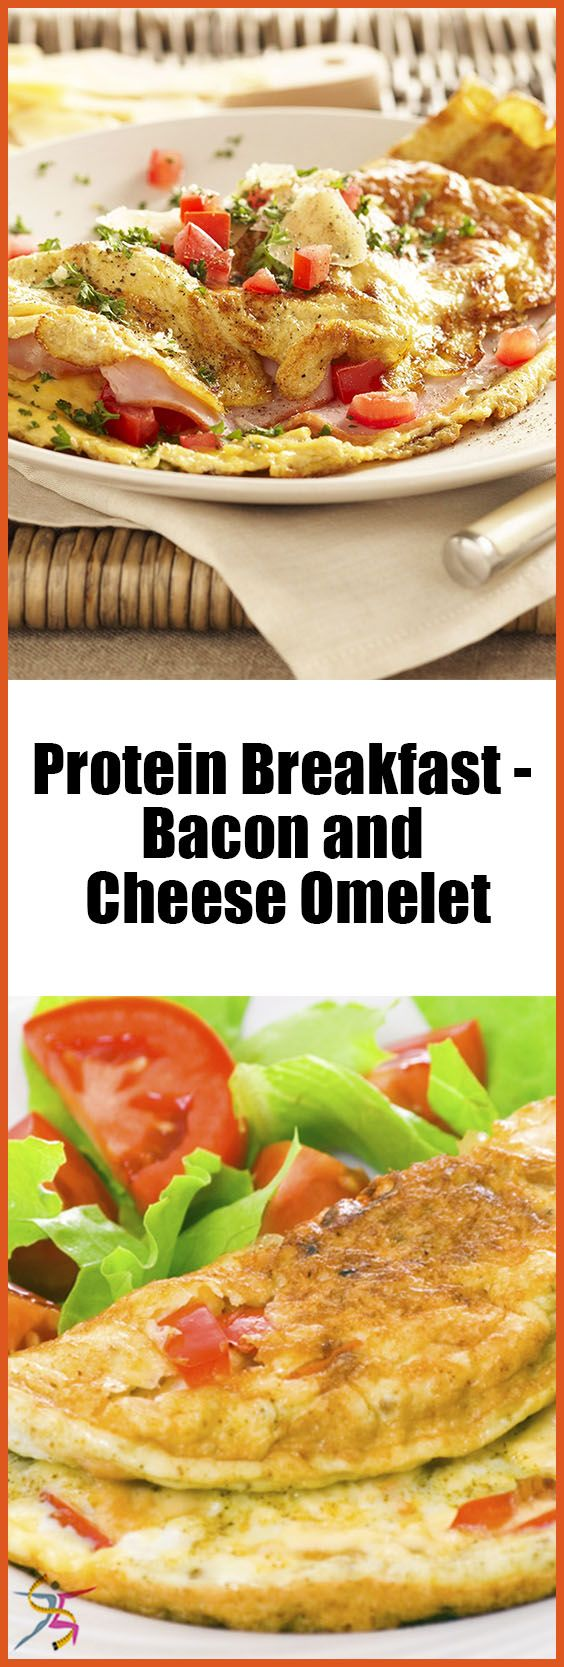 Bariatricpal Hot Protein Breakfast Bacon and Cheese